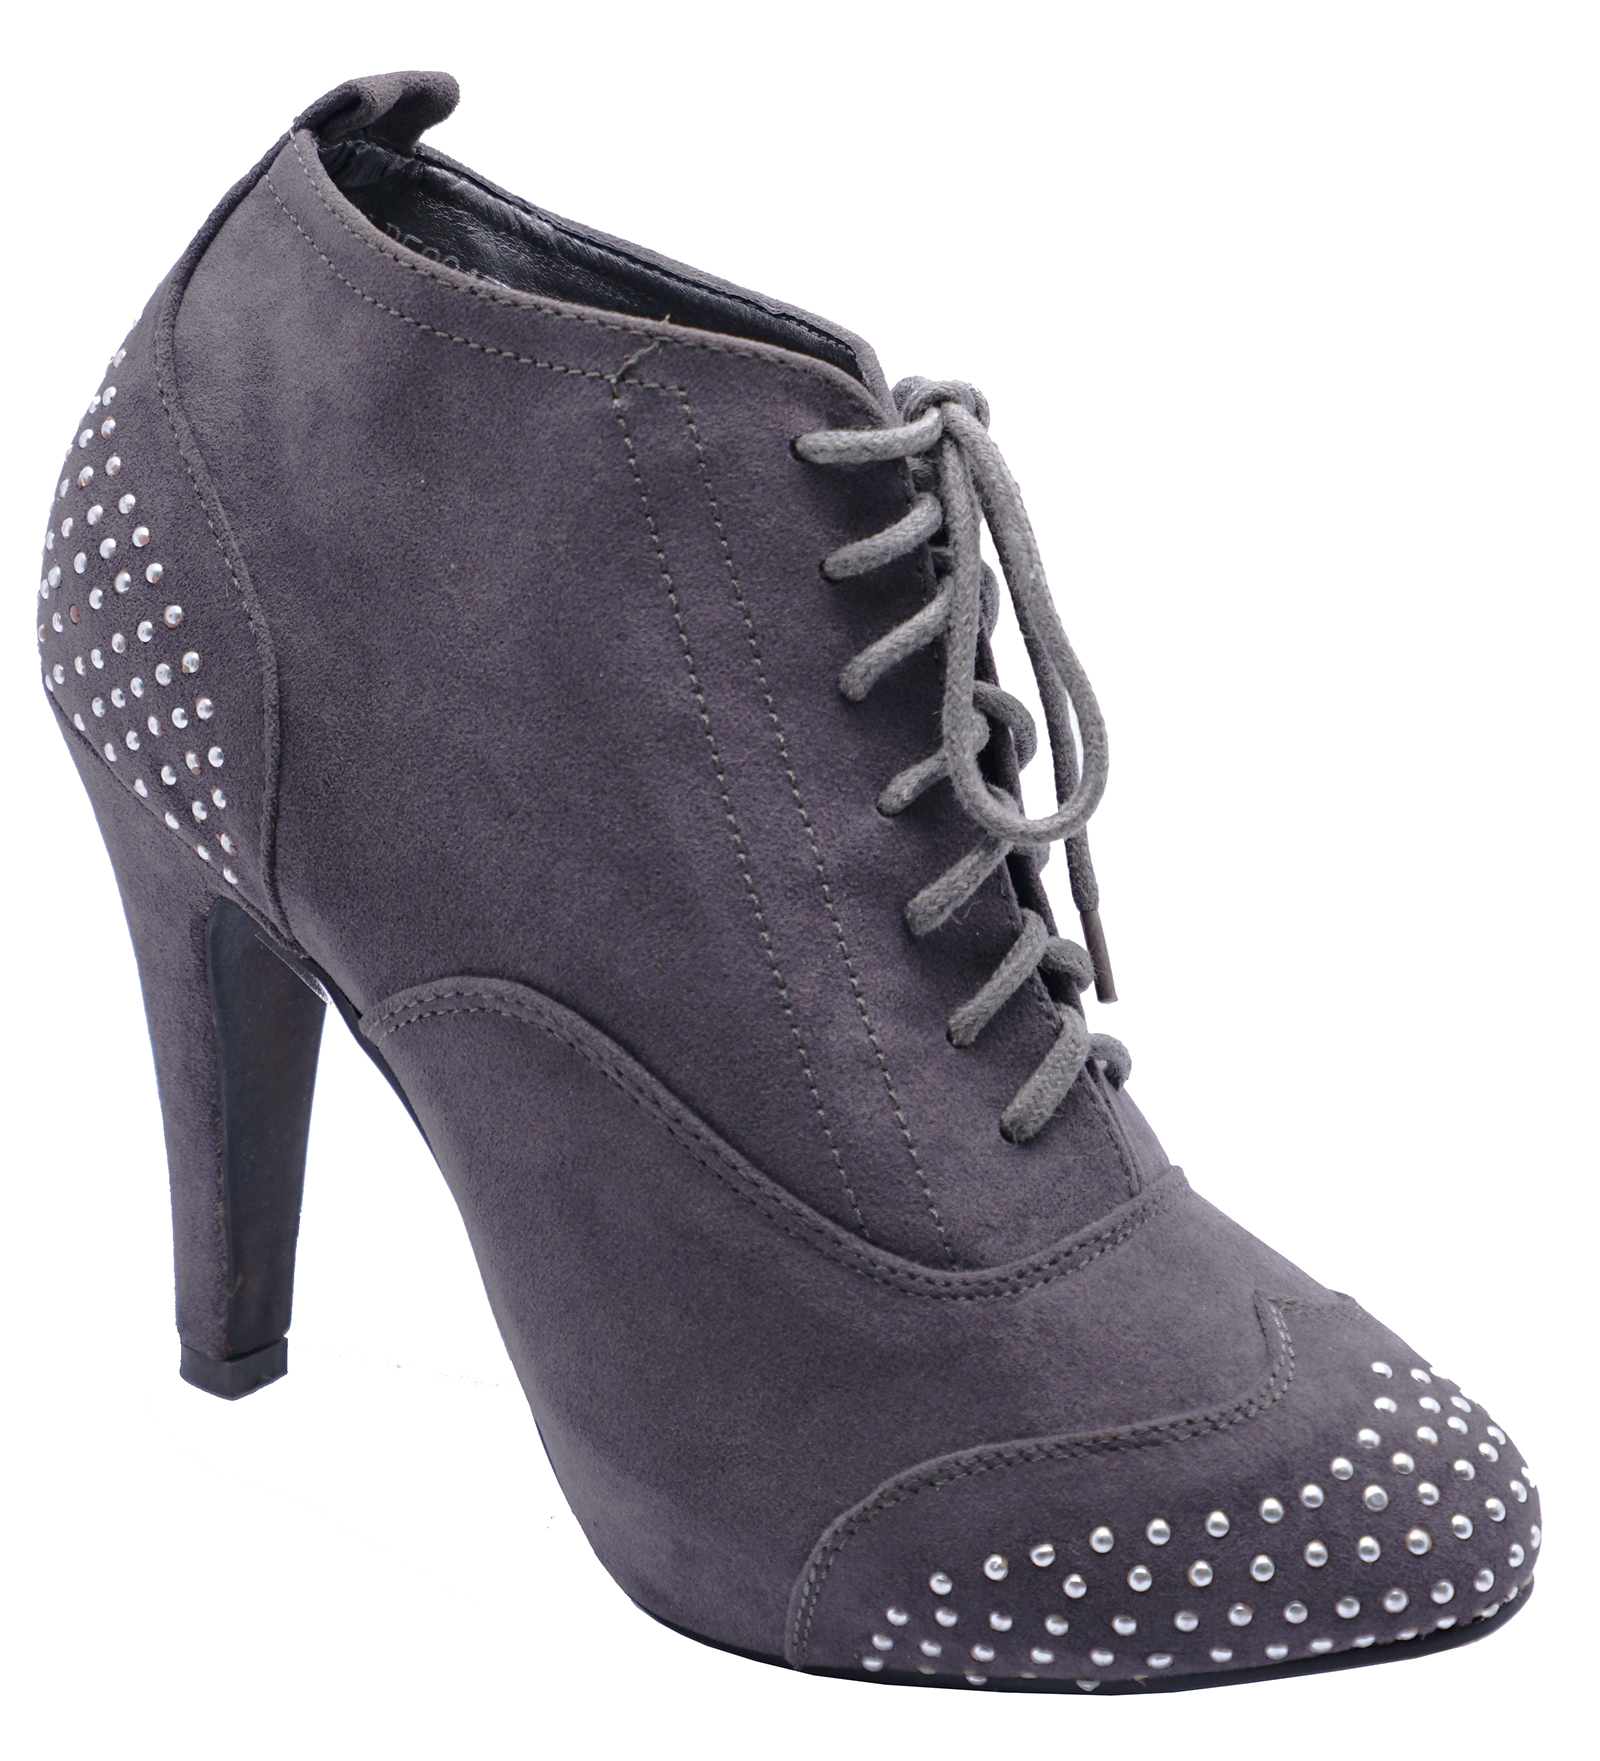 LADIES GREY LACE-UP DIAMANTE HIGH-HEEL BROGUE ANKLE BOOTS SHOES SIZES 3-8